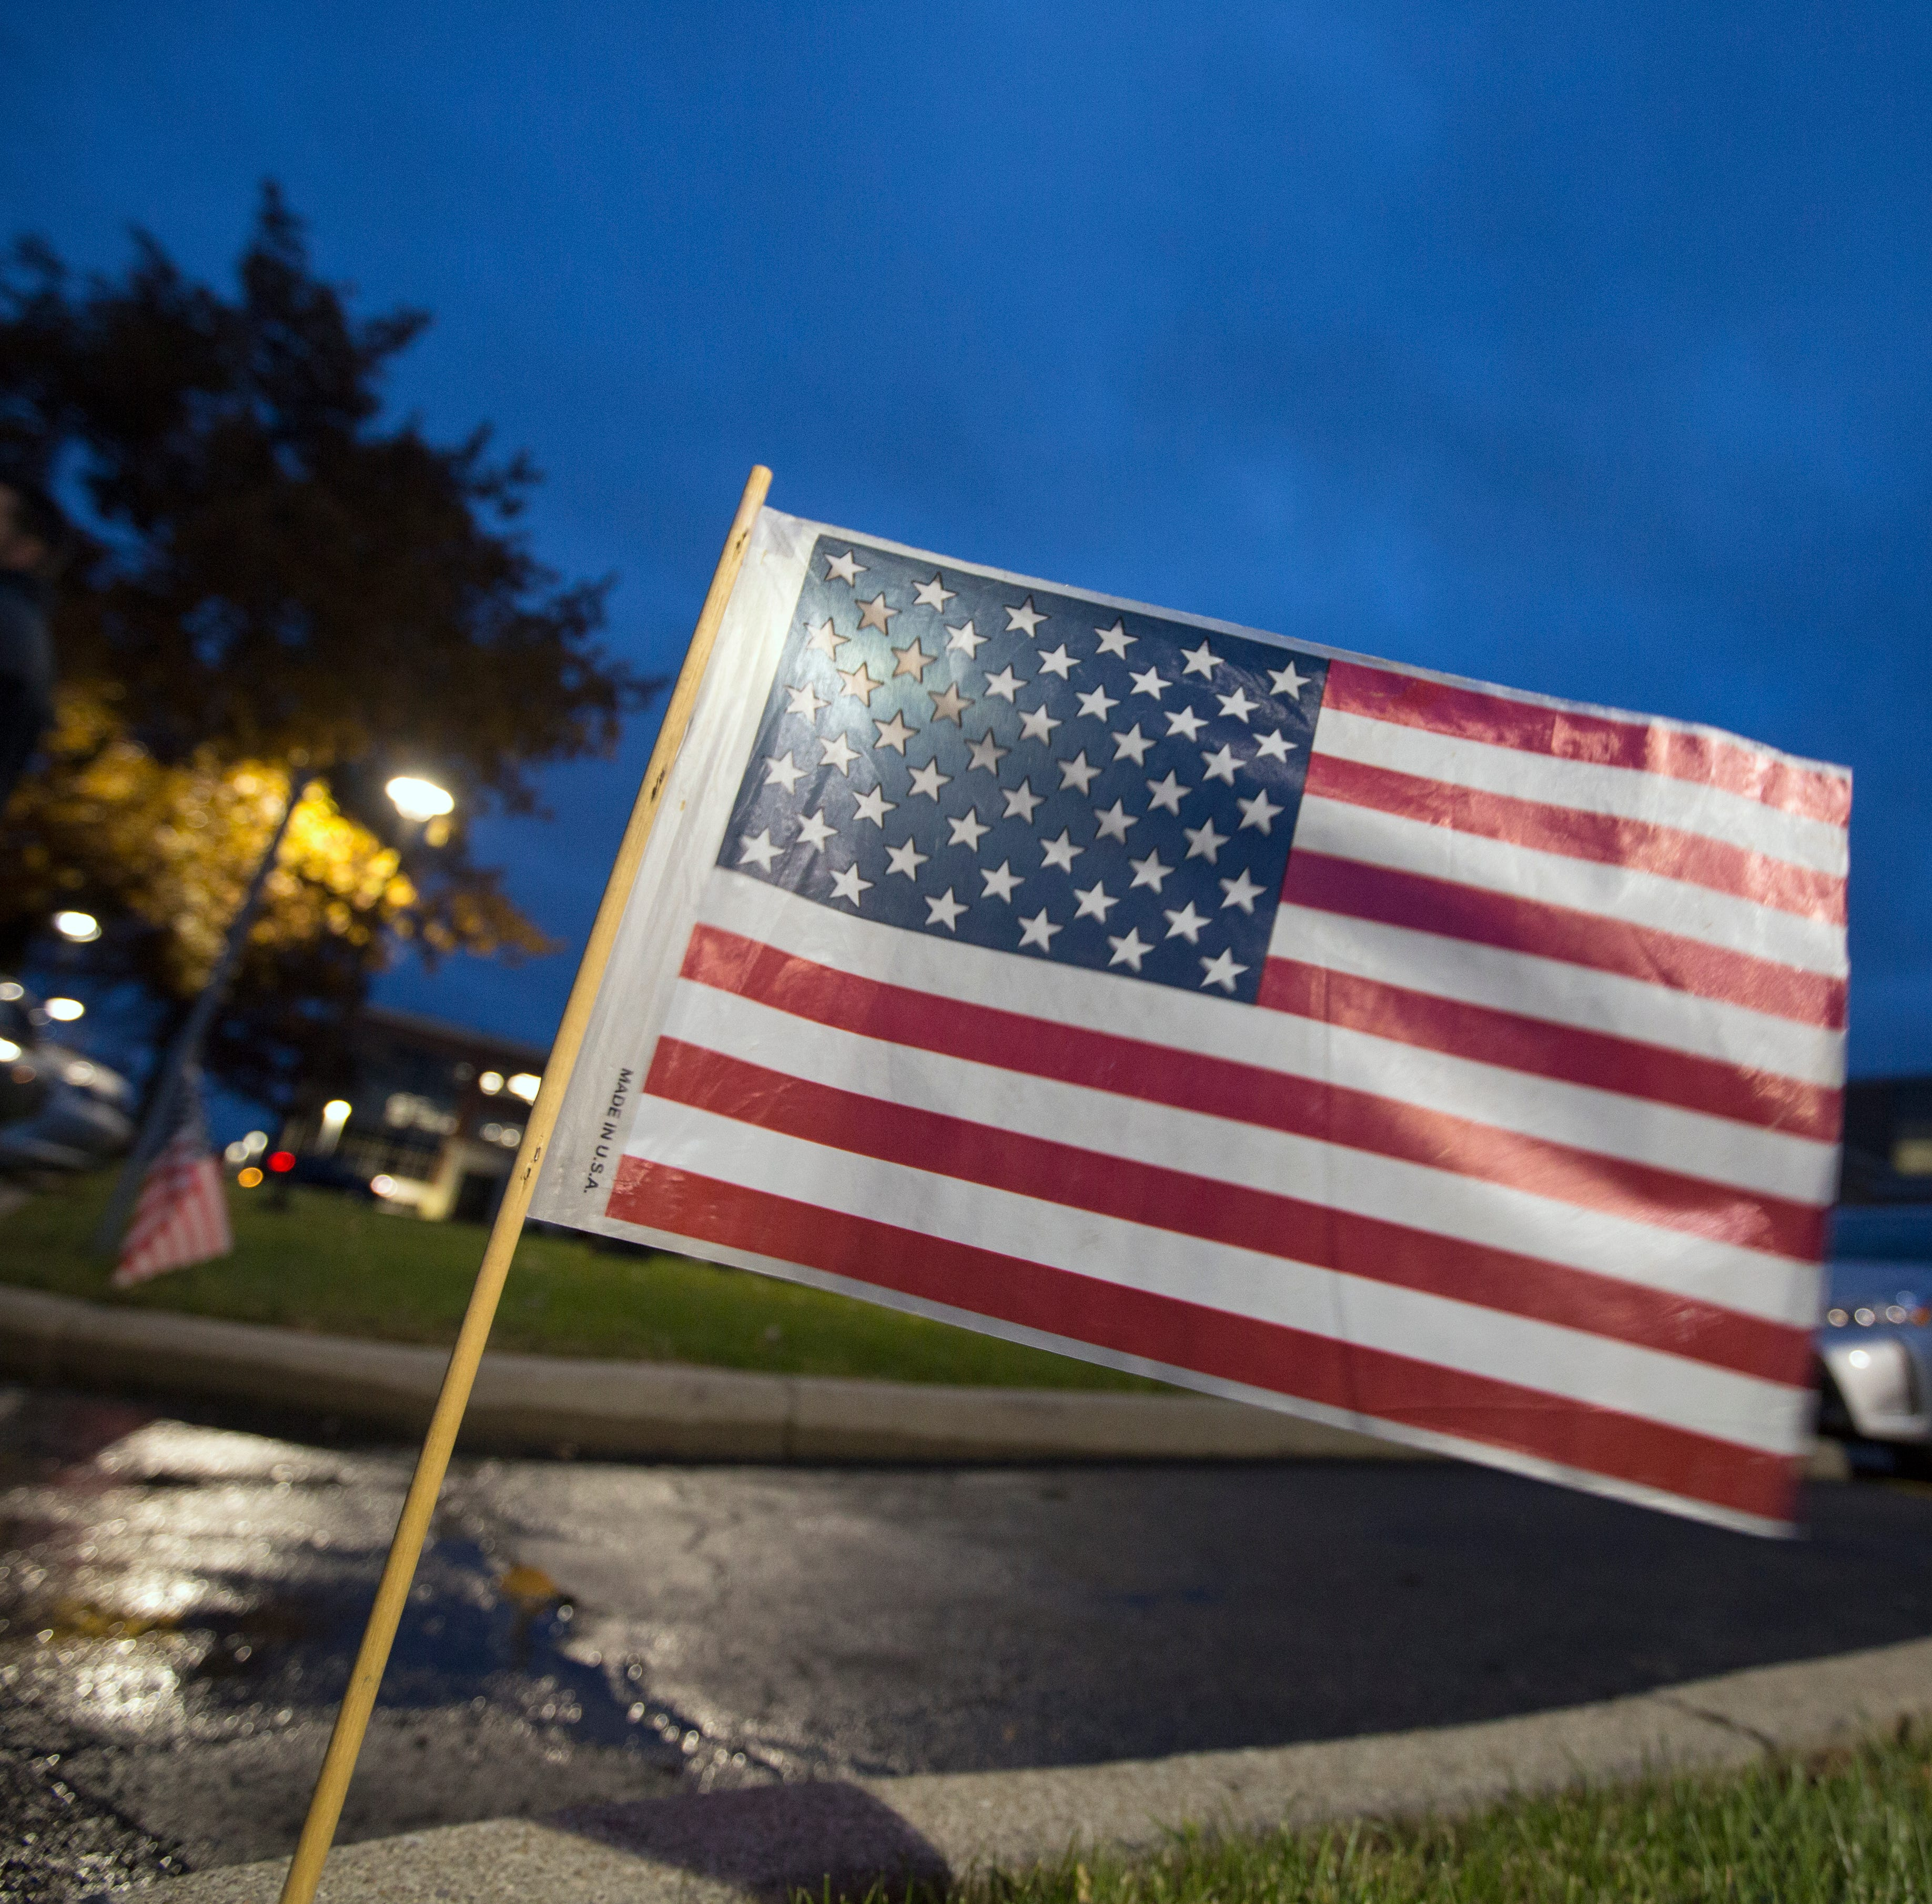 Opinion: After election, can we return to one America?